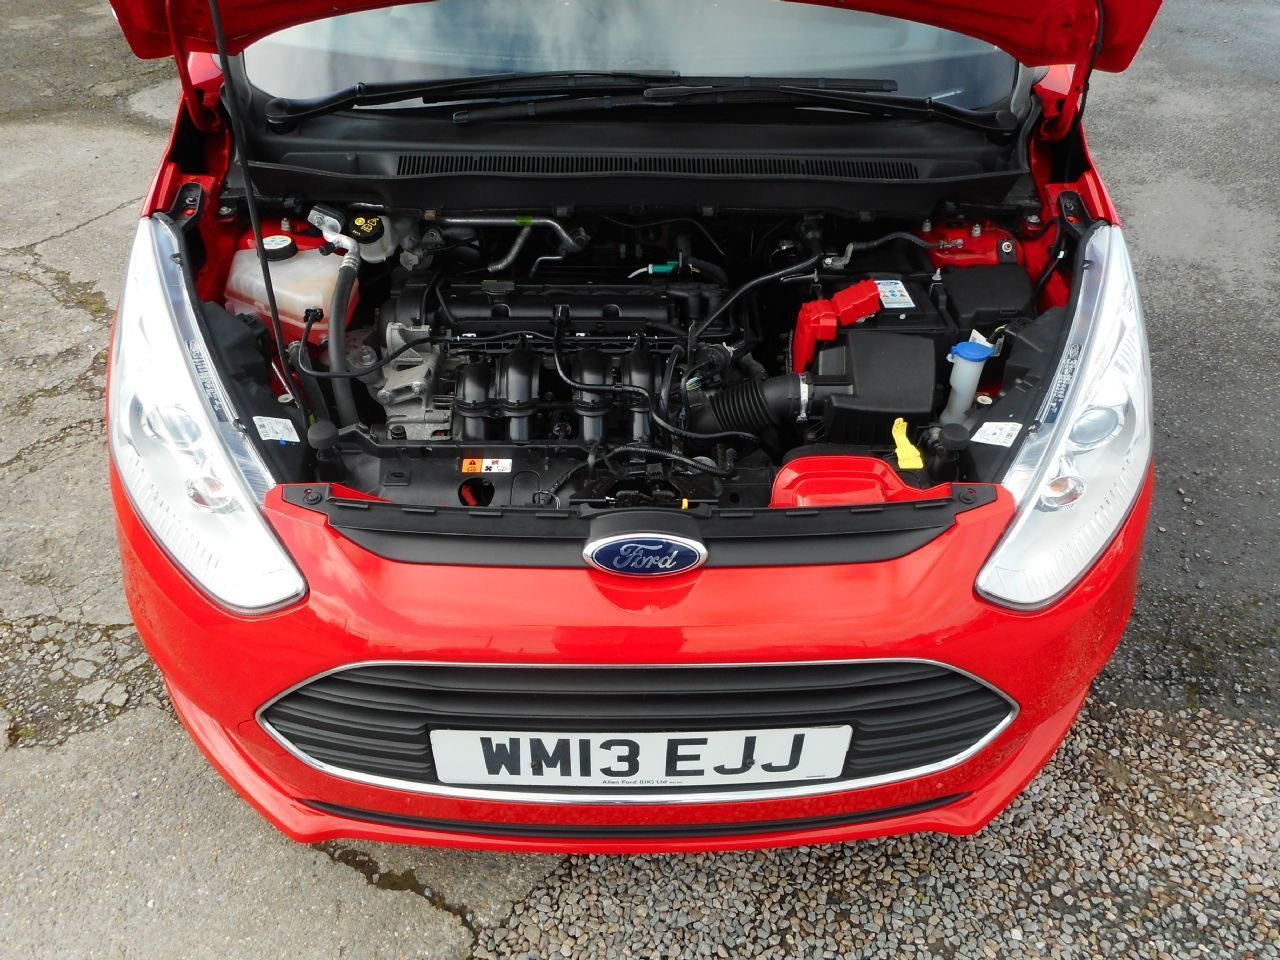 FORD B-MAX 1.4 90PS Zetec (2013) - Picture 17